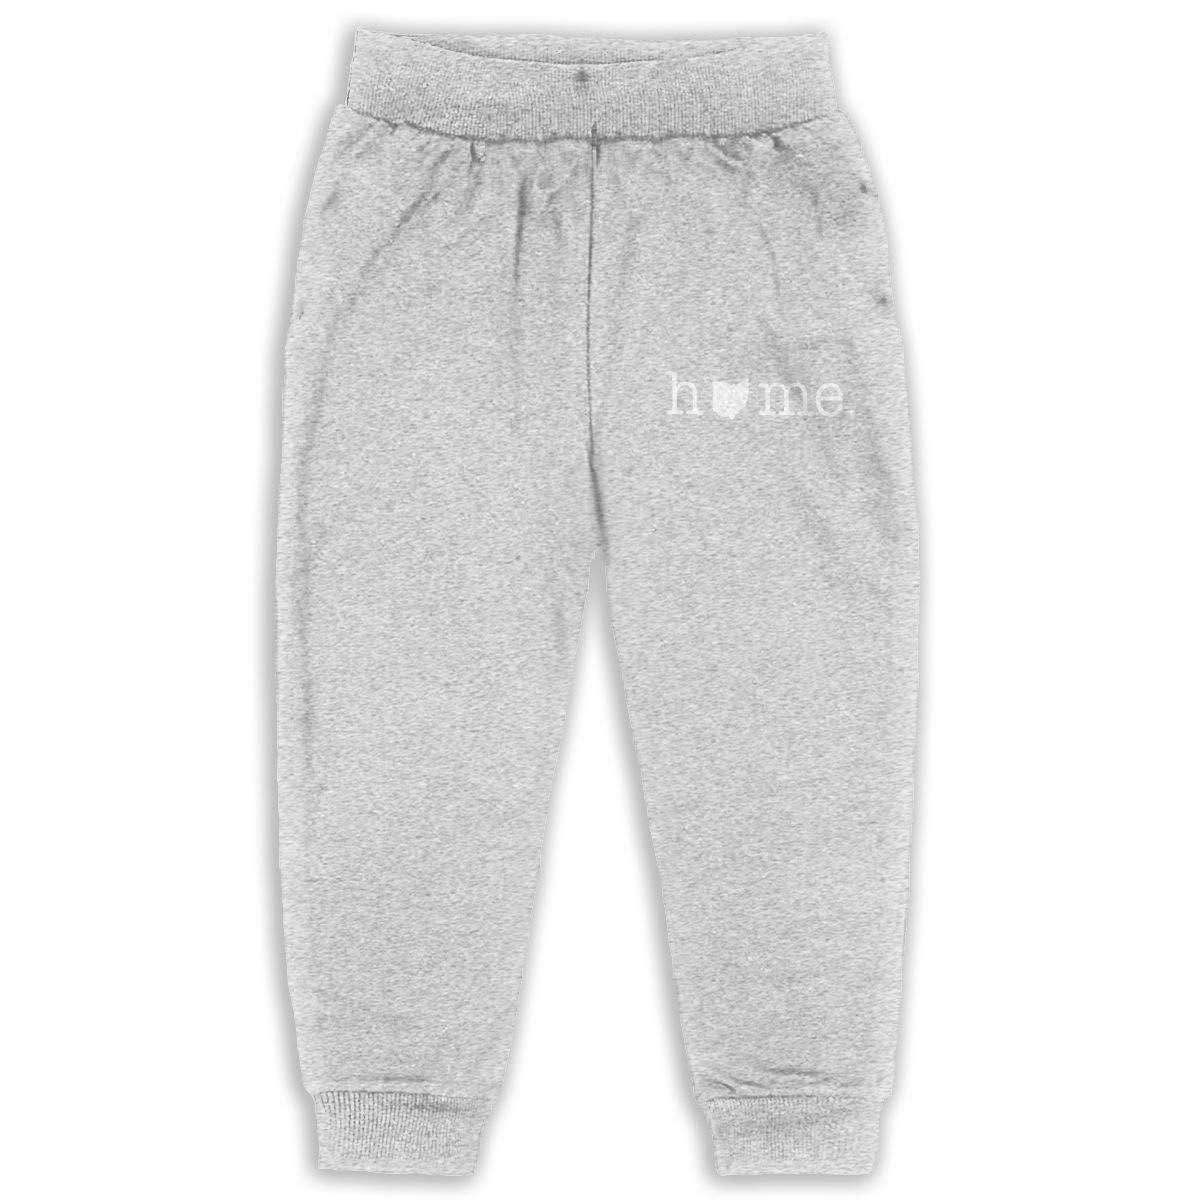 Home in Ohio State Kids Cotton Sweatpants,Jogger Long Jersey Sweatpants